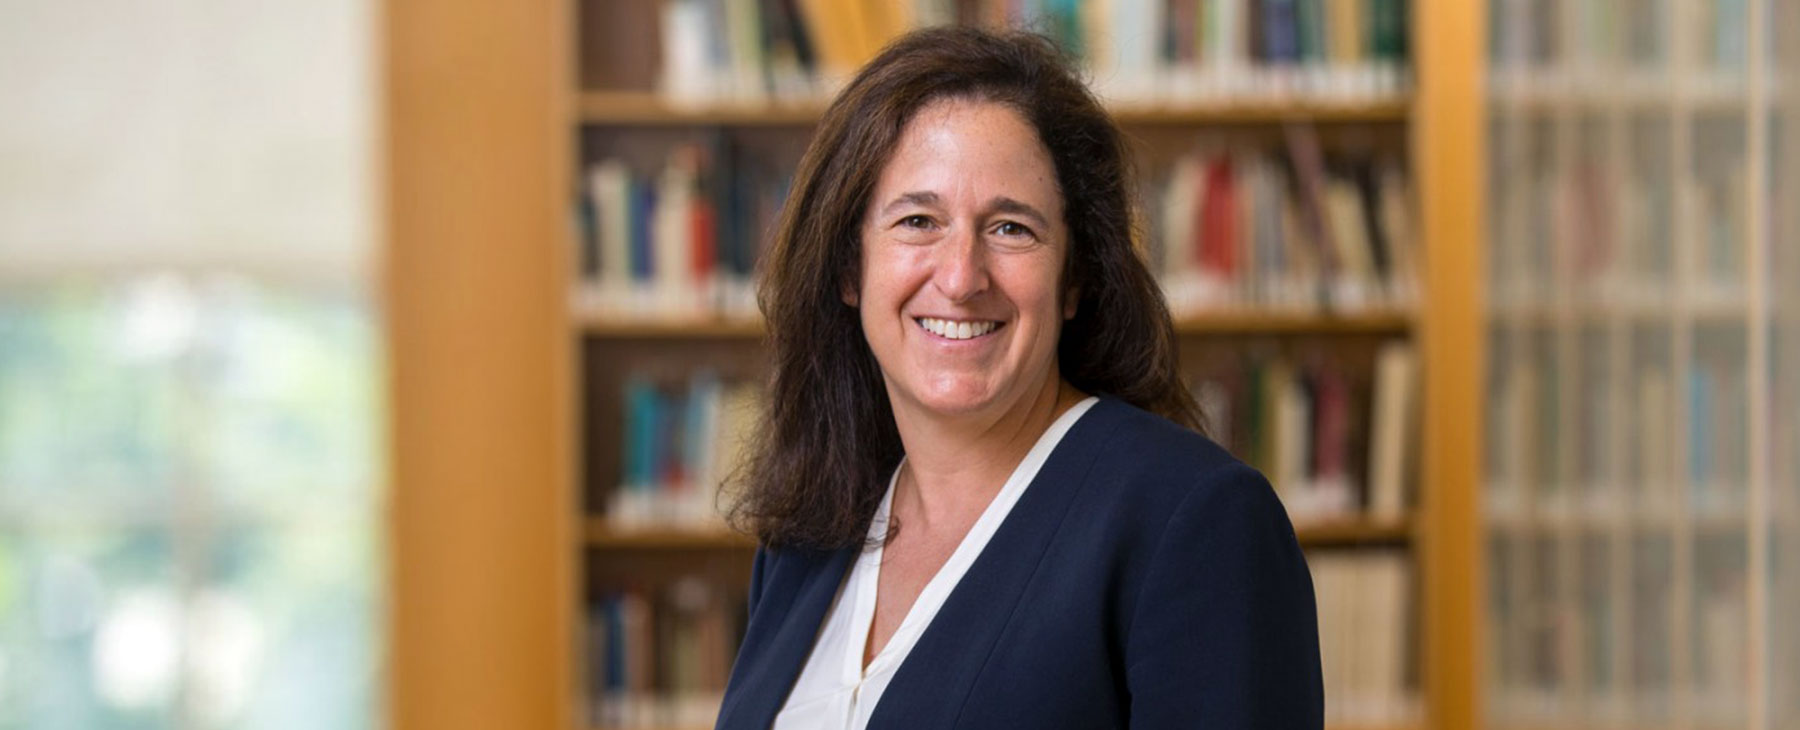 Dr. Susanna Loeb elected to the American Academy of Arts and Sciences